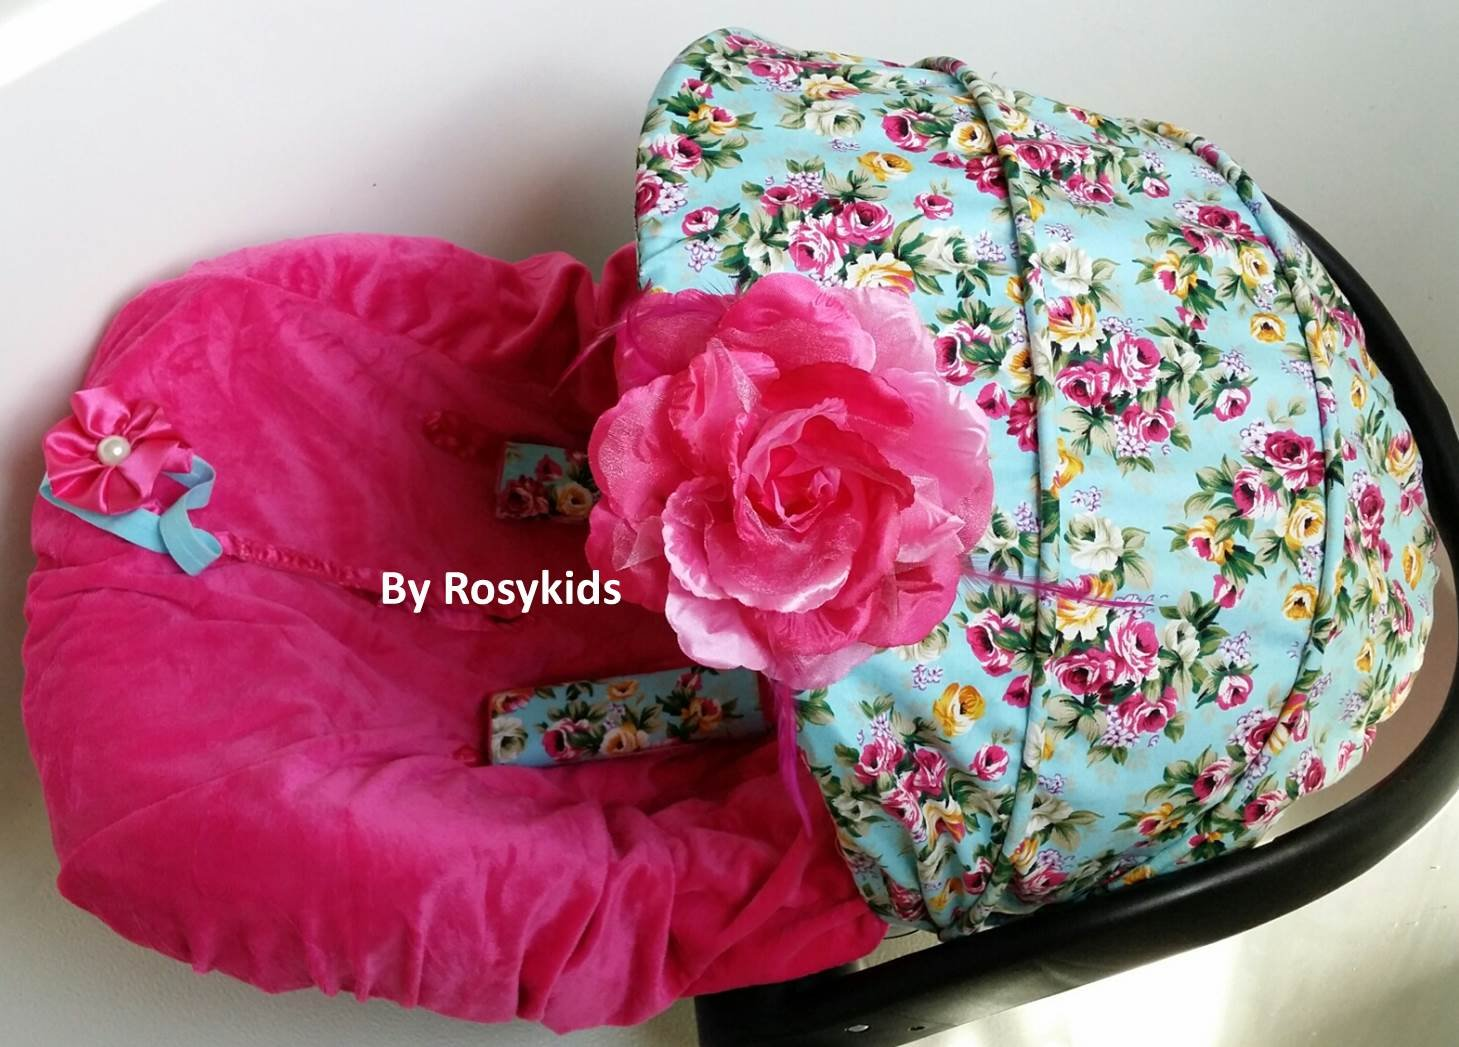 Amazon.com Infant Carseat Canopy Cover 3 Pc Whole Caboodle Baby Car Seat Cover Kit Floral Print C010101 Baby & Amazon.com: Infant Carseat Canopy Cover 3 Pc Whole Caboodle Baby ...